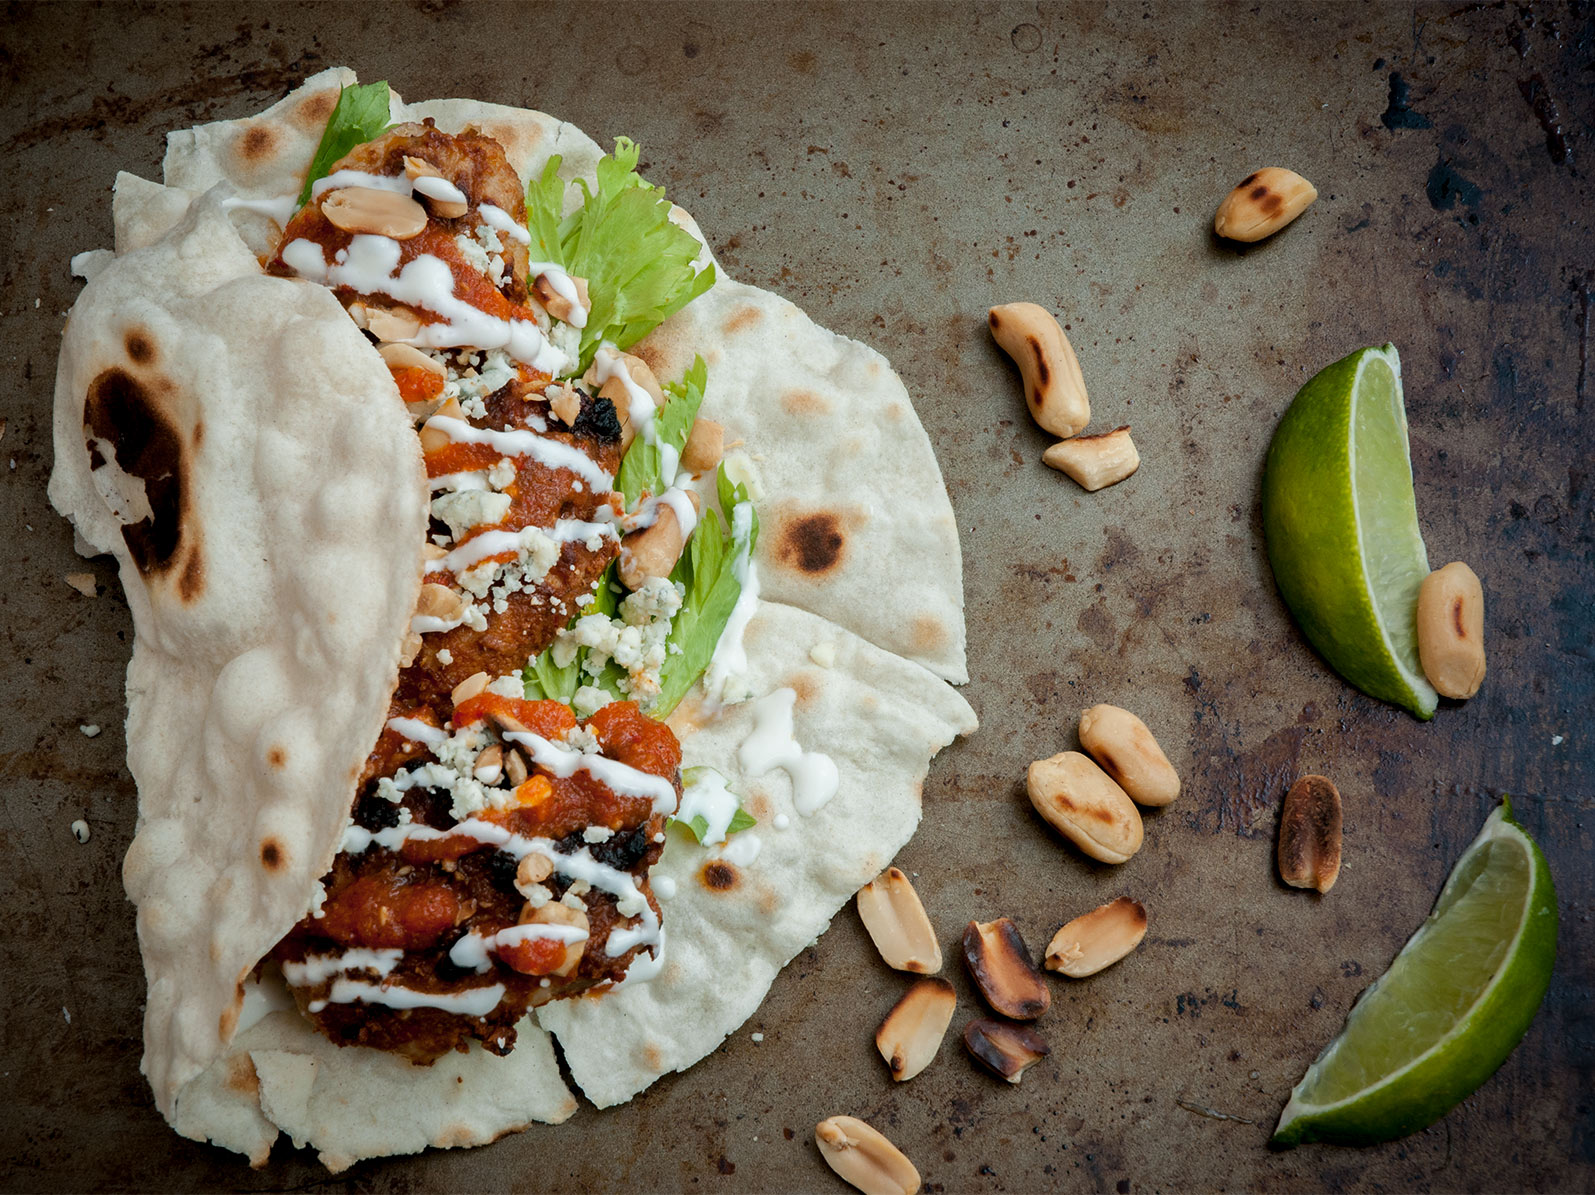 chicken wing tacos, with salsa macha, crema mexicana, blue cheese & celery hearts